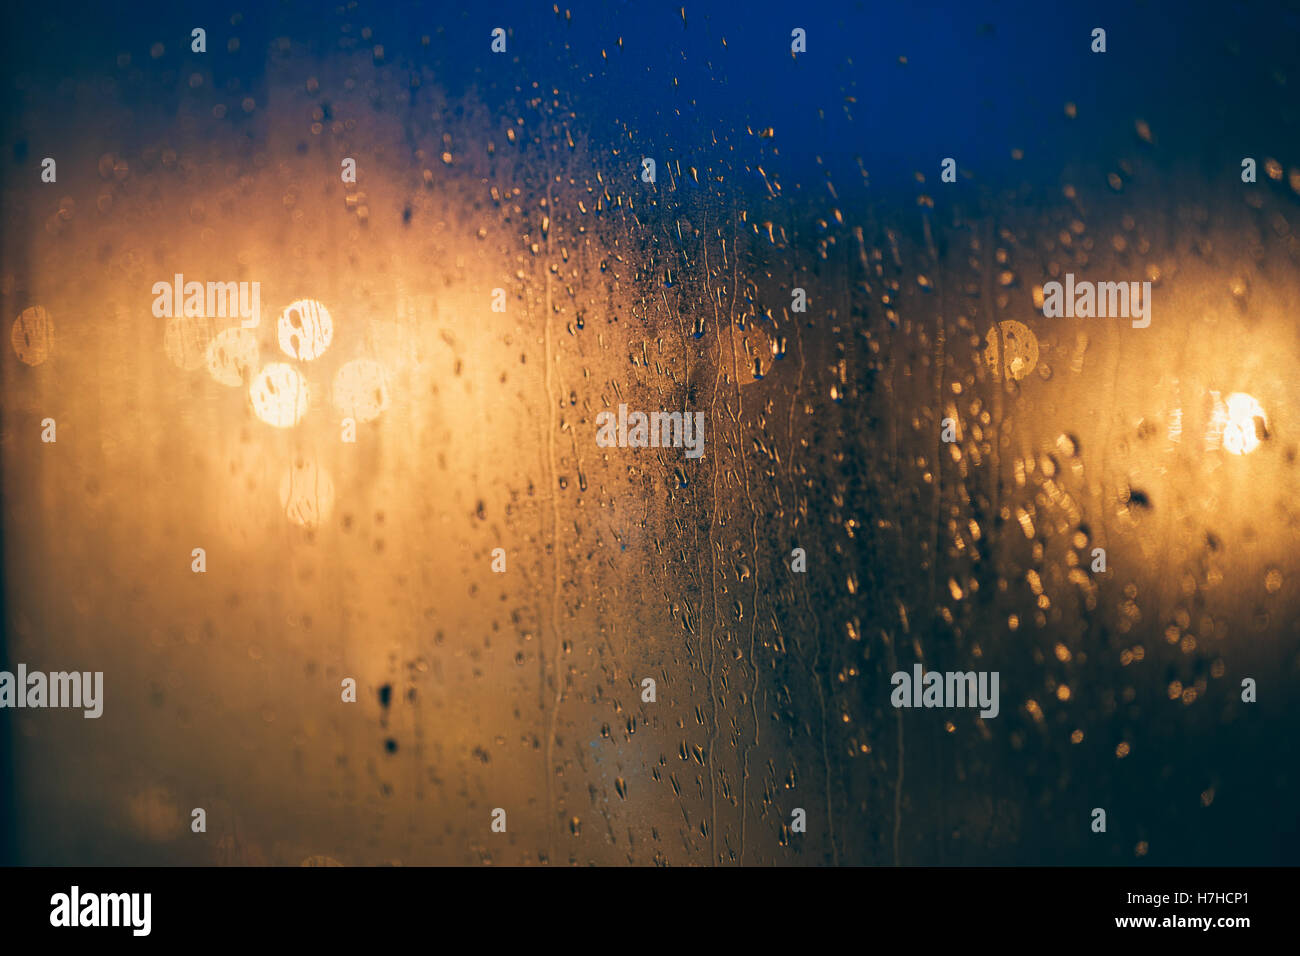 Abstract background of blurred lights through steamy window with waterdrops, selective focus - Stock Image